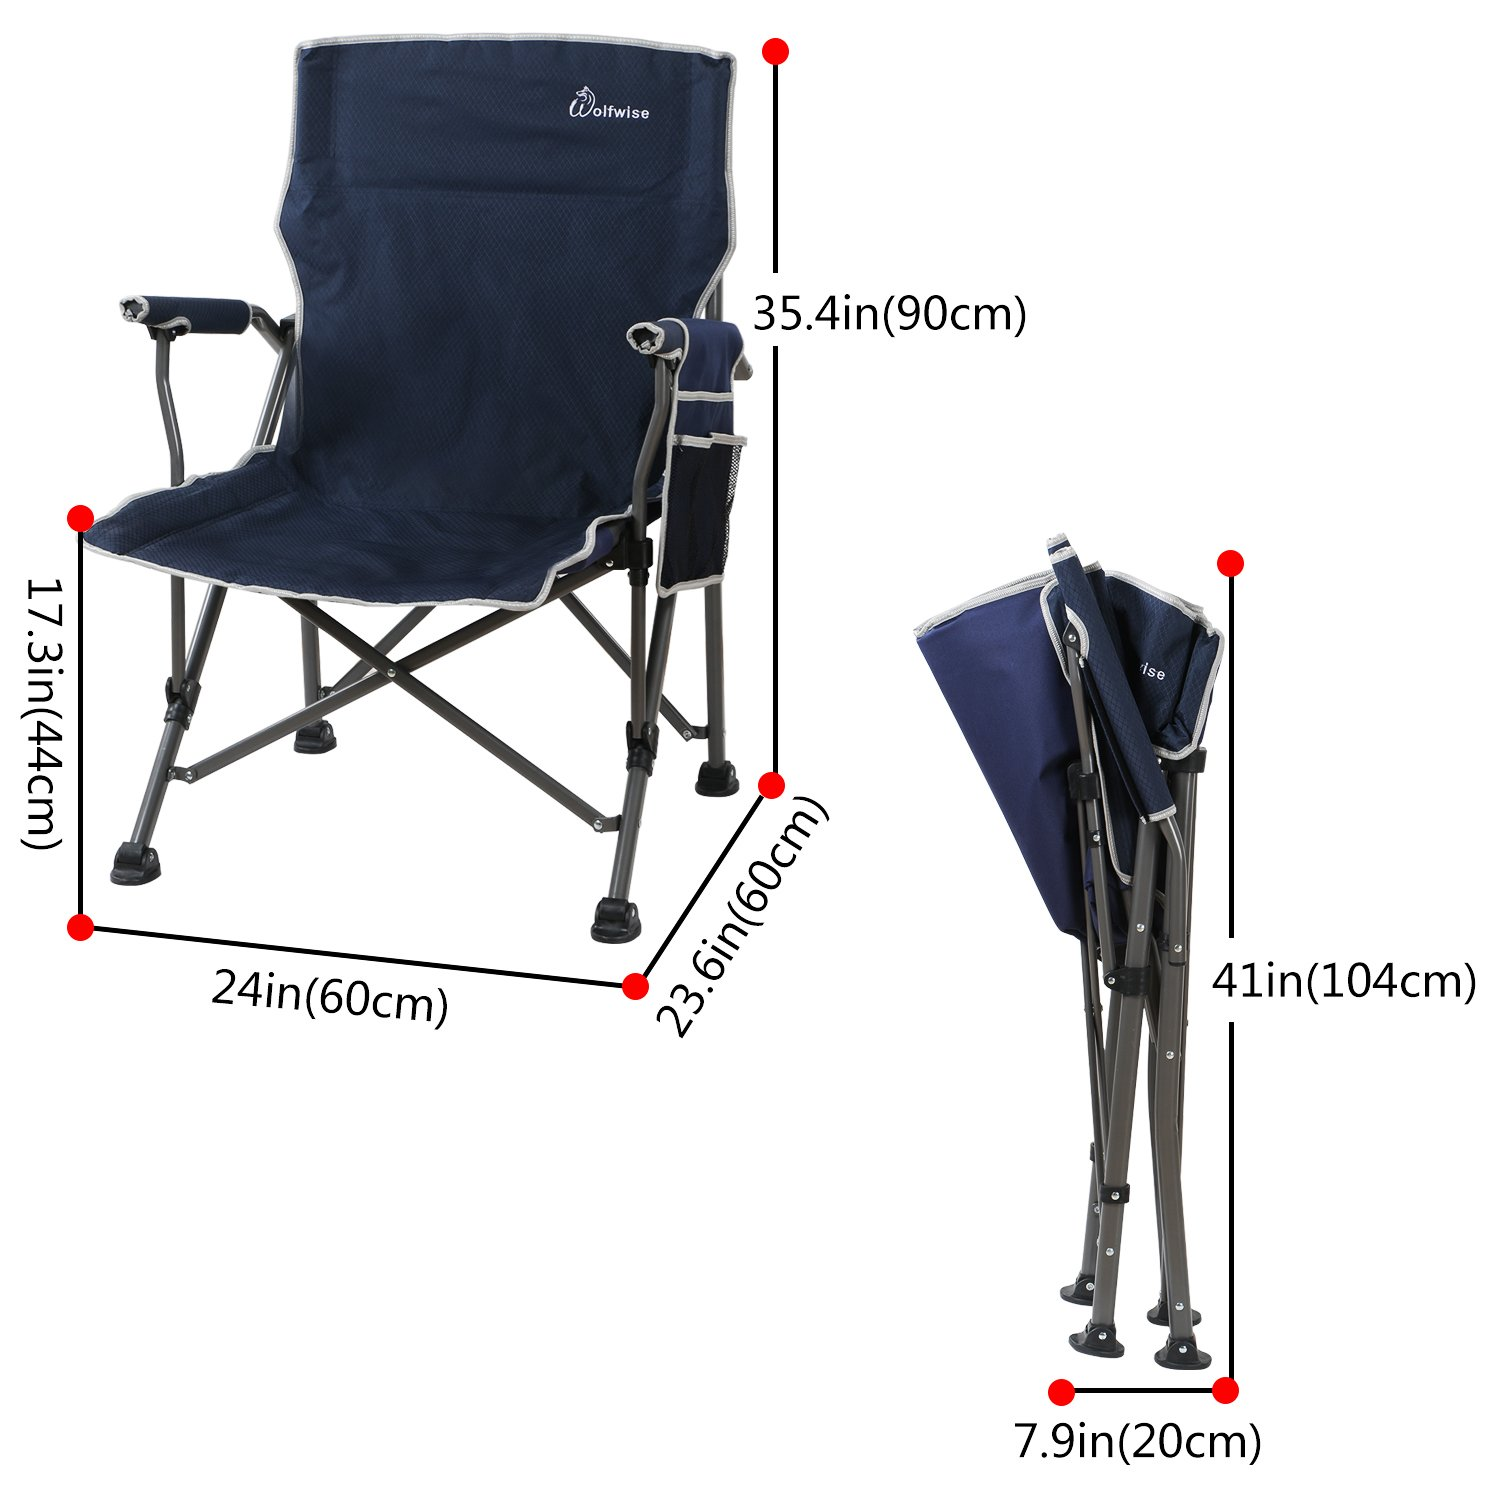 WolfWise Heavy Duty Folding Camping Chairs Portable Backpacking